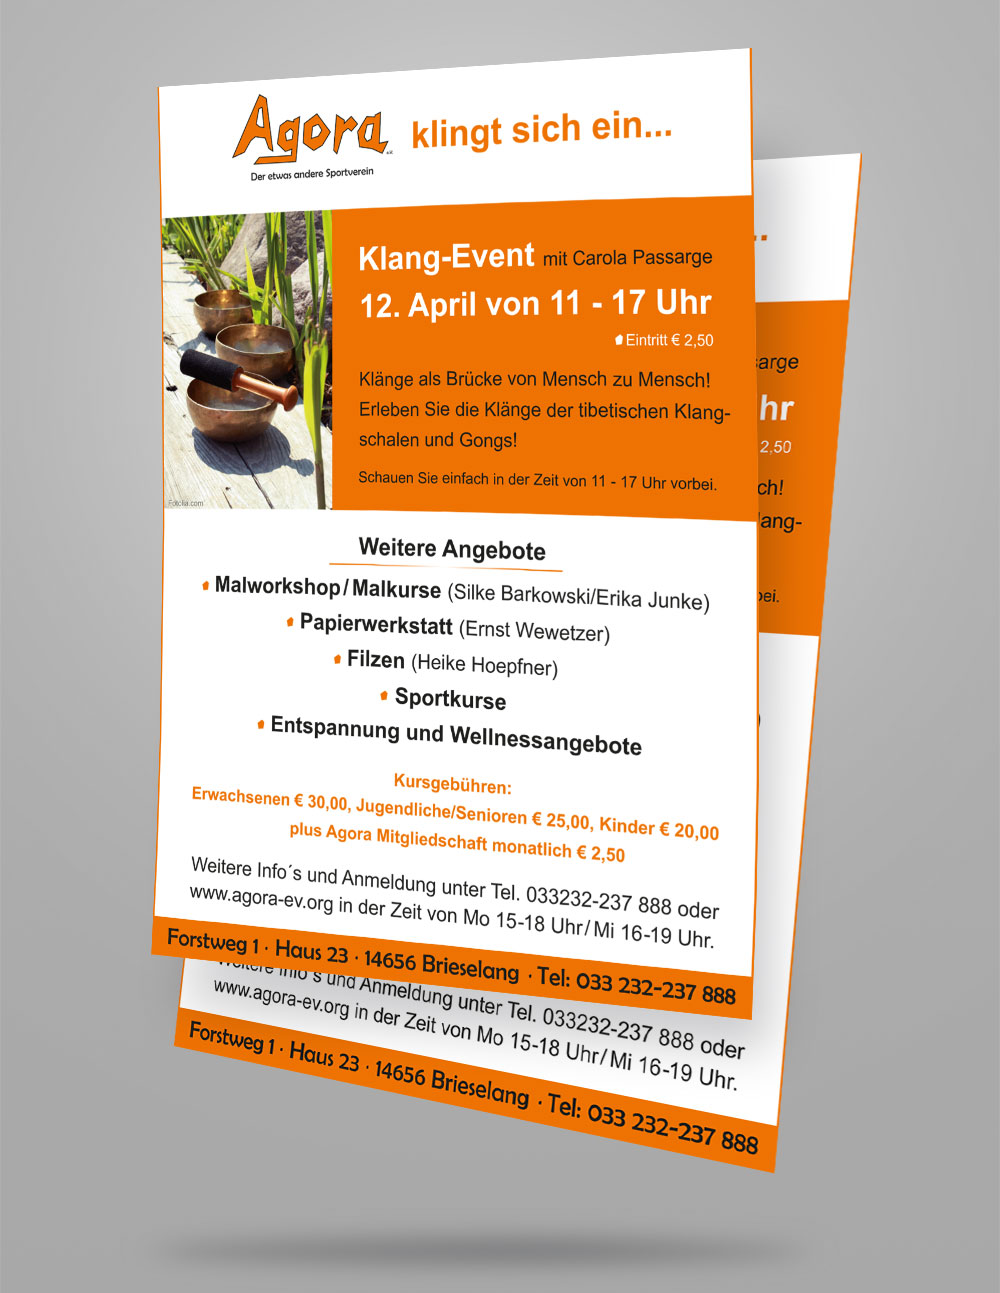 Niedlich Haus Reinigung Flyer Vorlage Fotos - Entry Level Resume ...